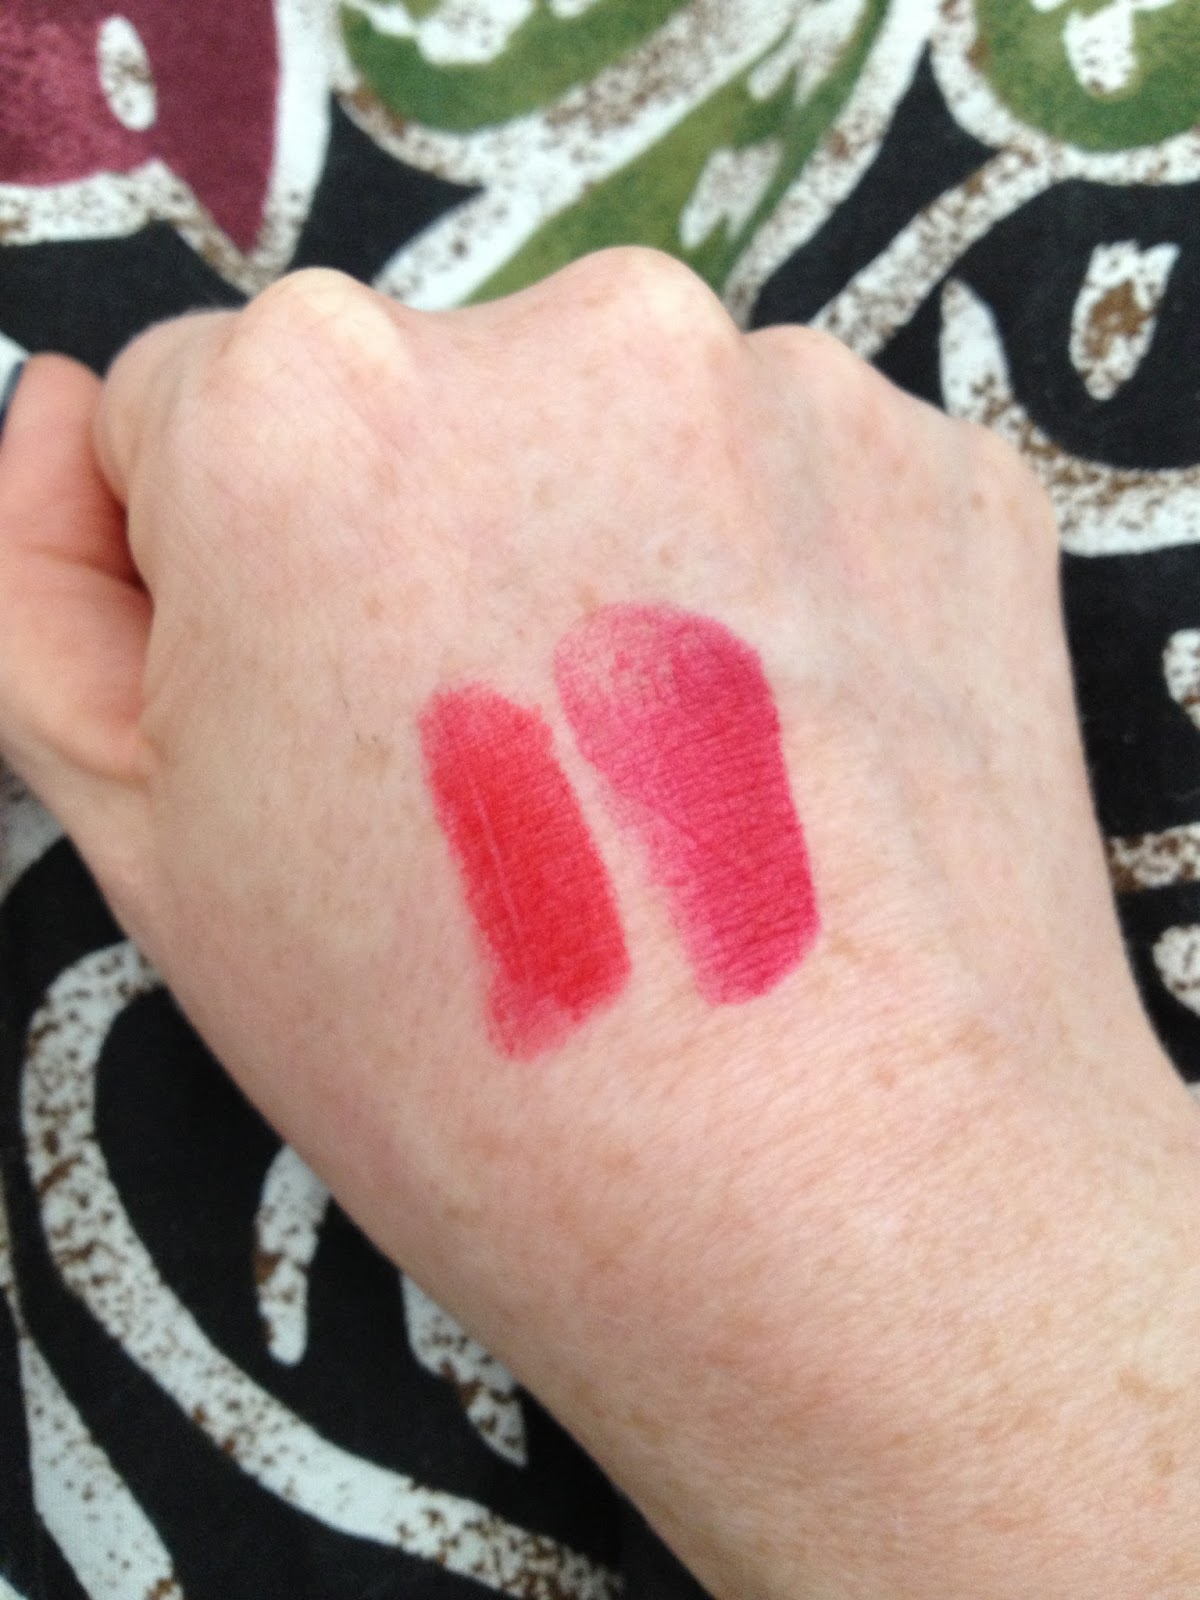 the dc metro retro  lipstick review  lipstick queen lipsticks in red sinner and scarlet sinner